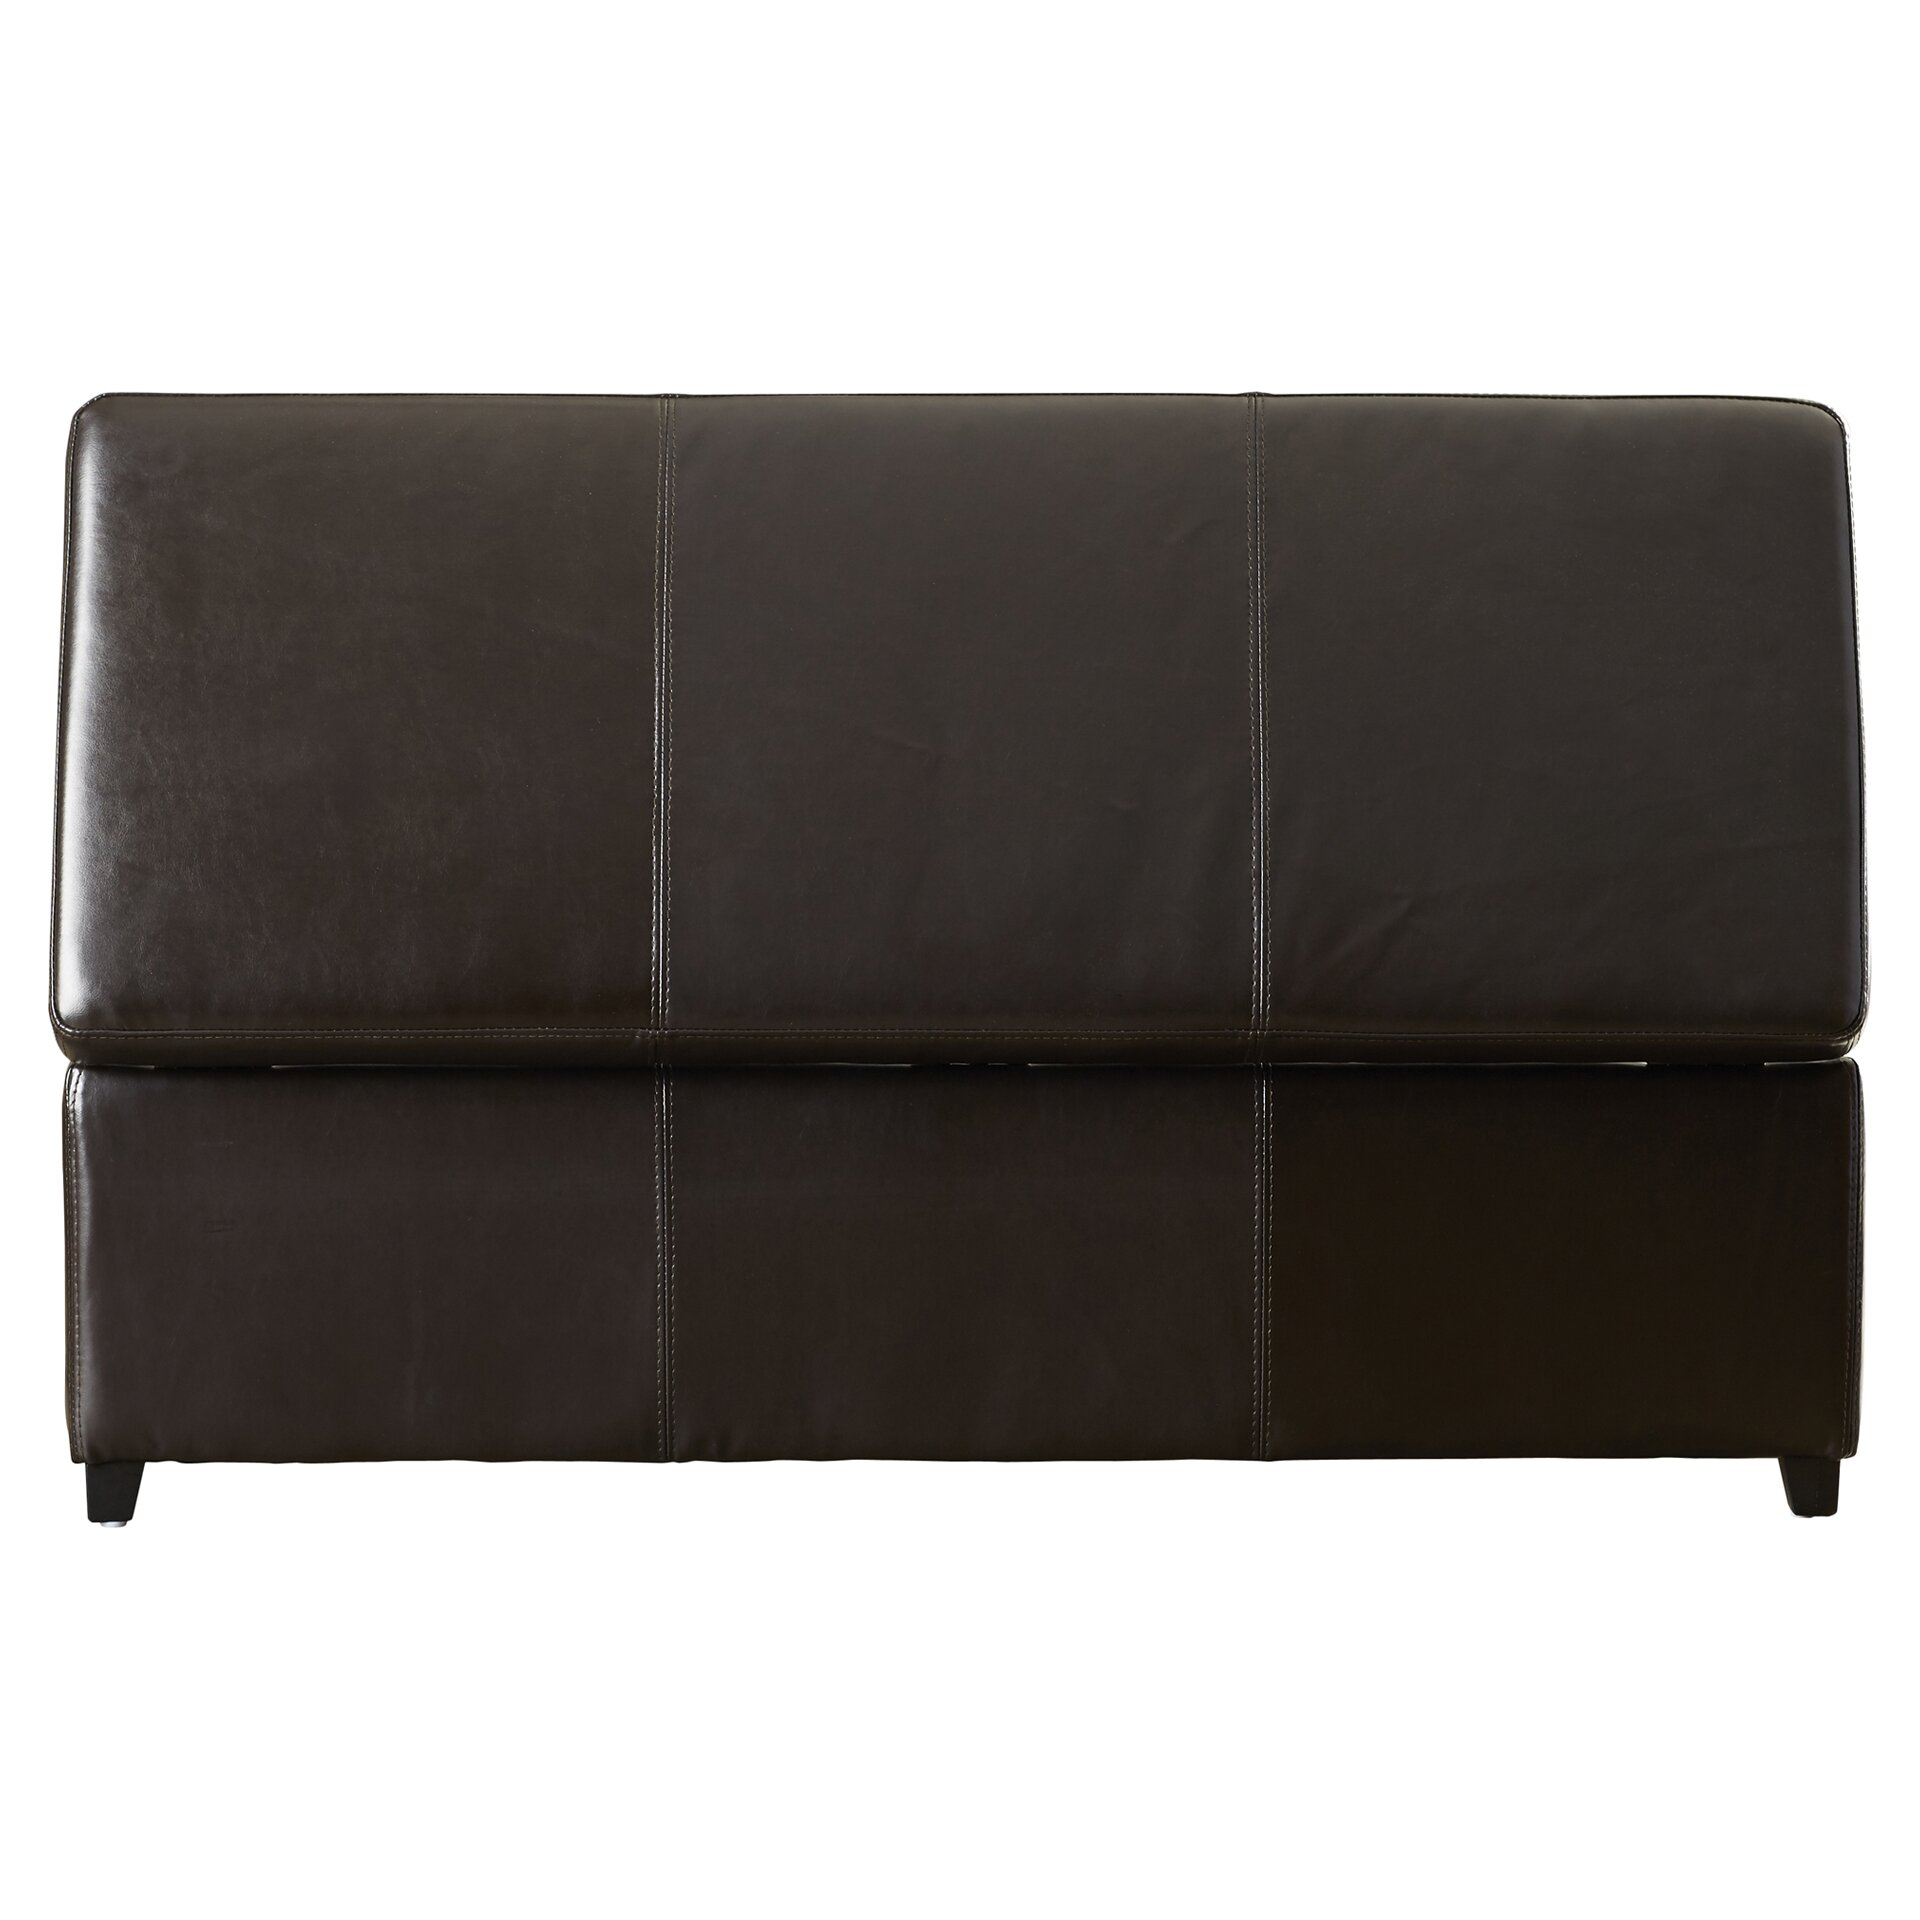 Leather Storage Bench Bedroom Charlton Home Ephraim Leather Storage Bedroom Bench Reviews